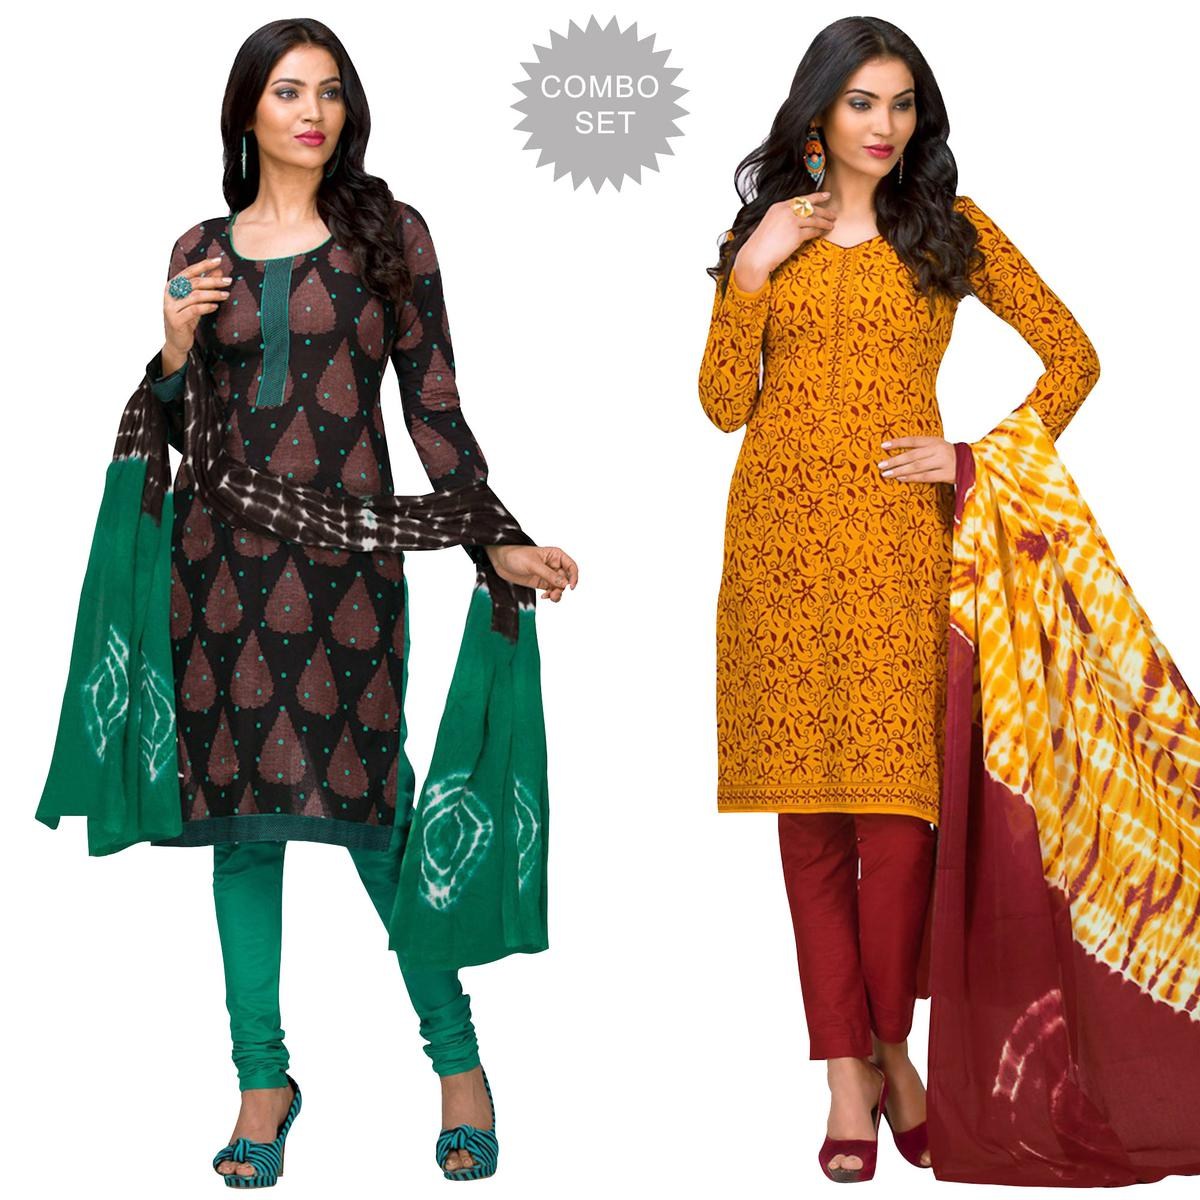 54f957a47c0e0 Buy Graceful Casual Printed Jetpur Cotton Dress Materials - Pack of 2 for womens  online India